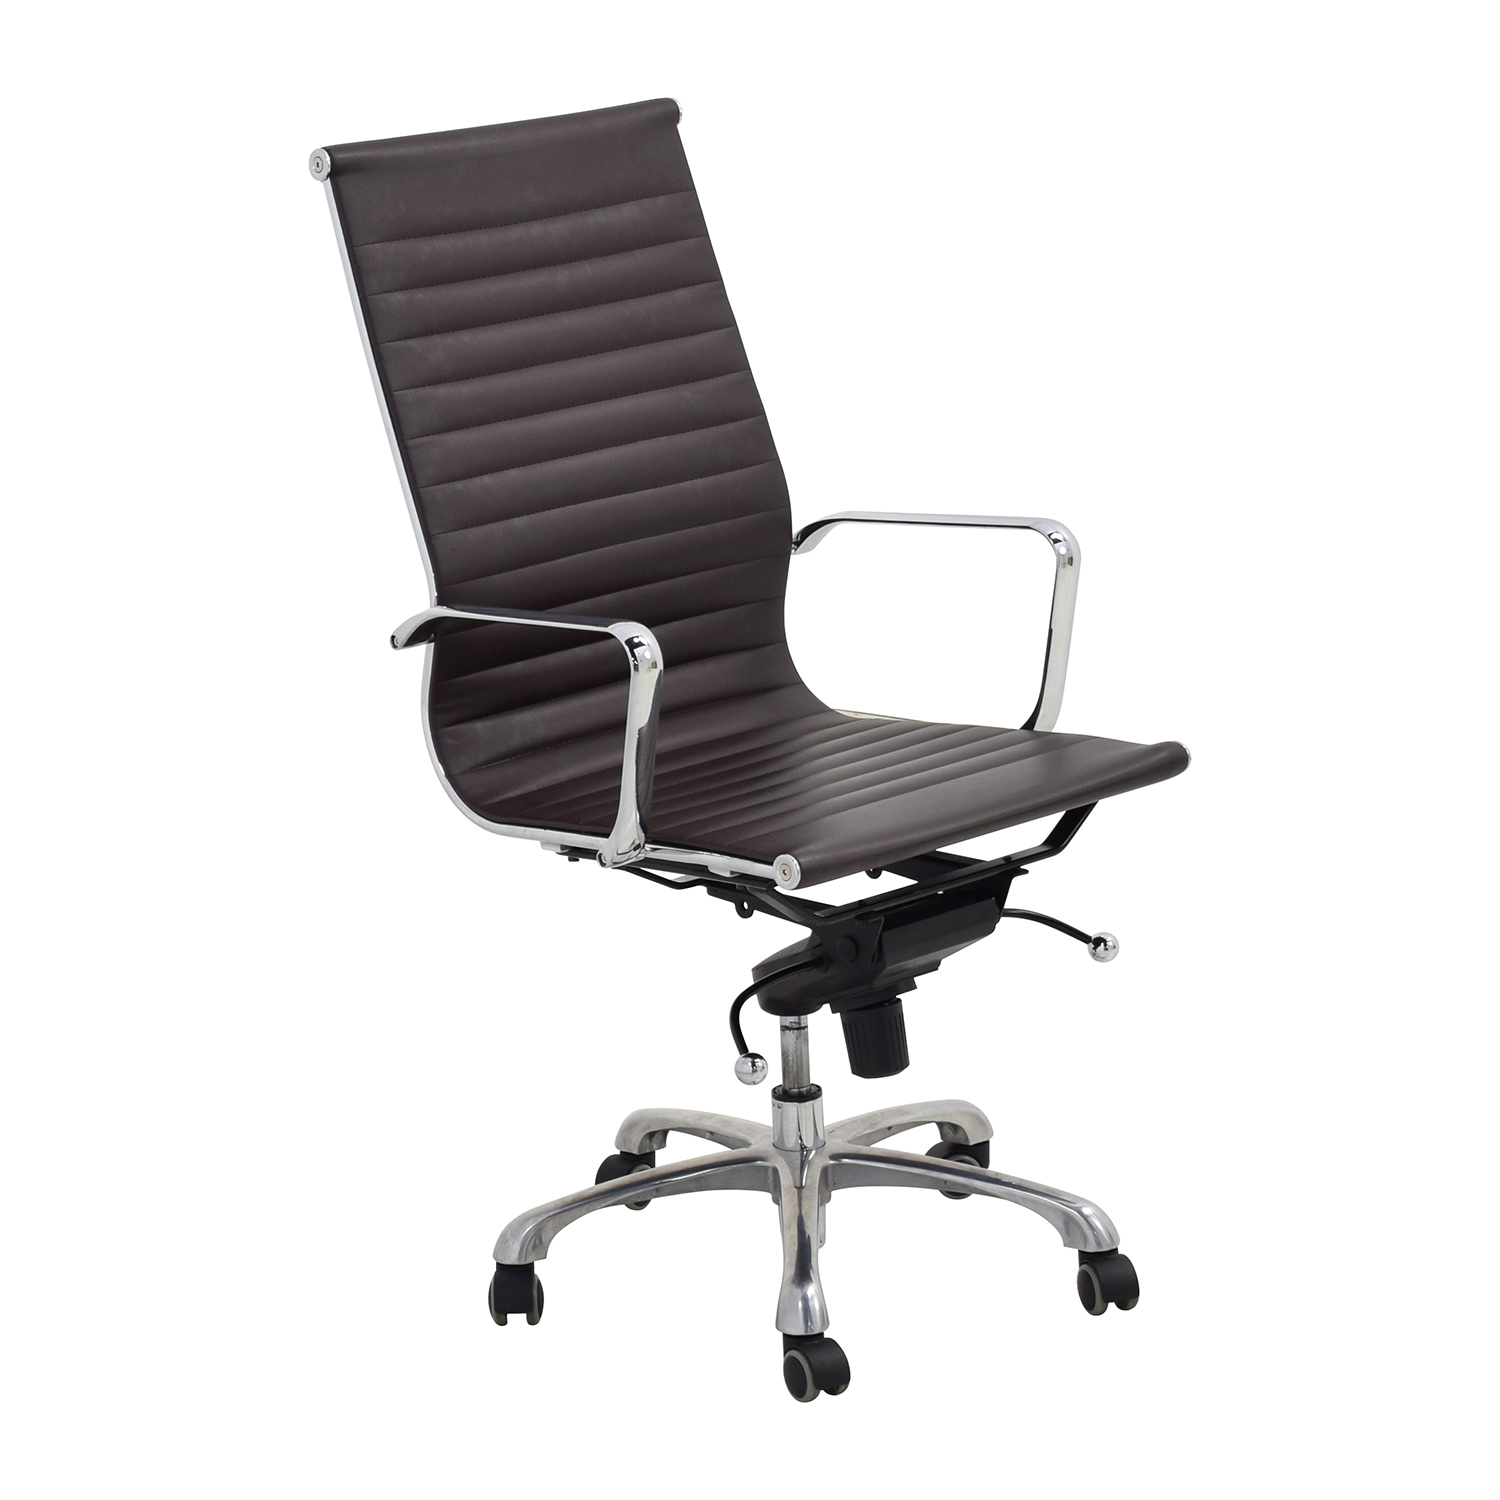 55% OFF Eames Style Black Adjustable fice Chair Chairs